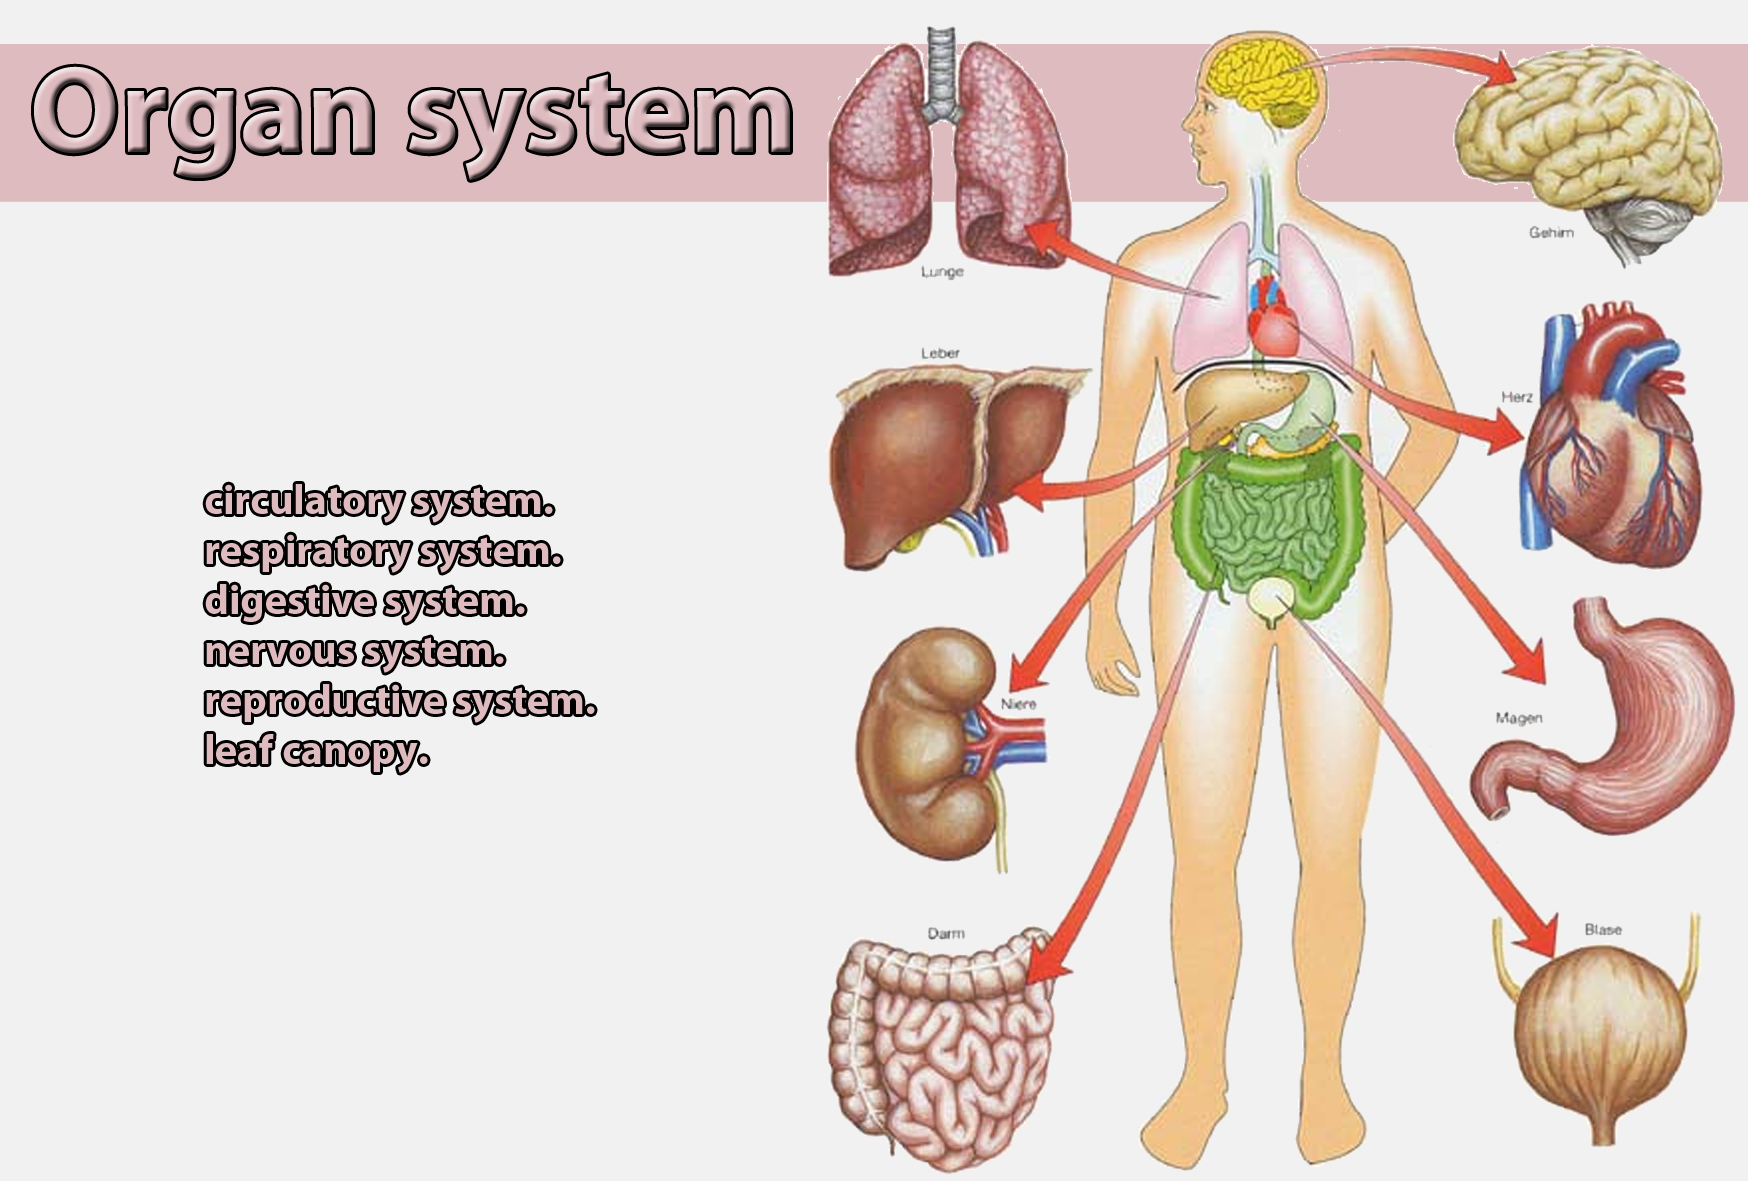 Organ system | Galnet Wiki | FANDOM powered by Wikia